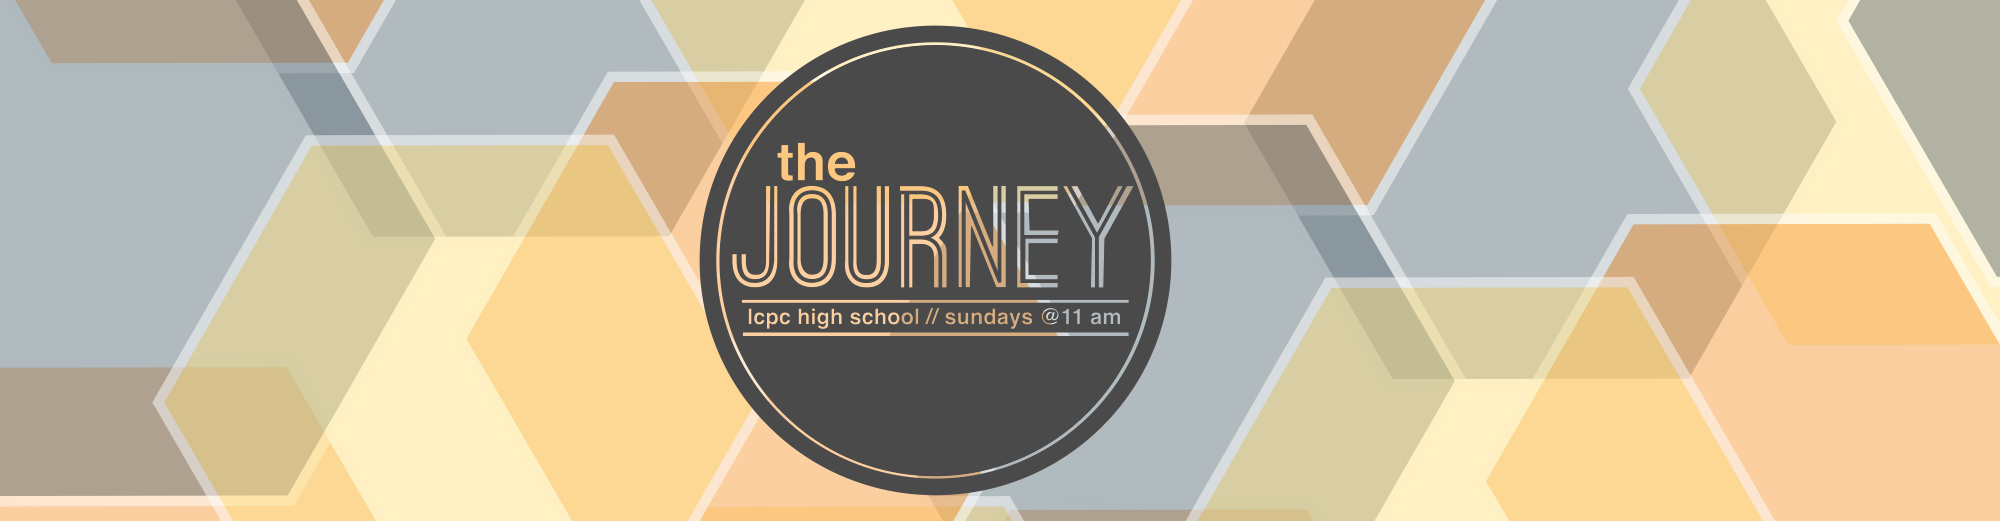 theJOURNEY Website Banner